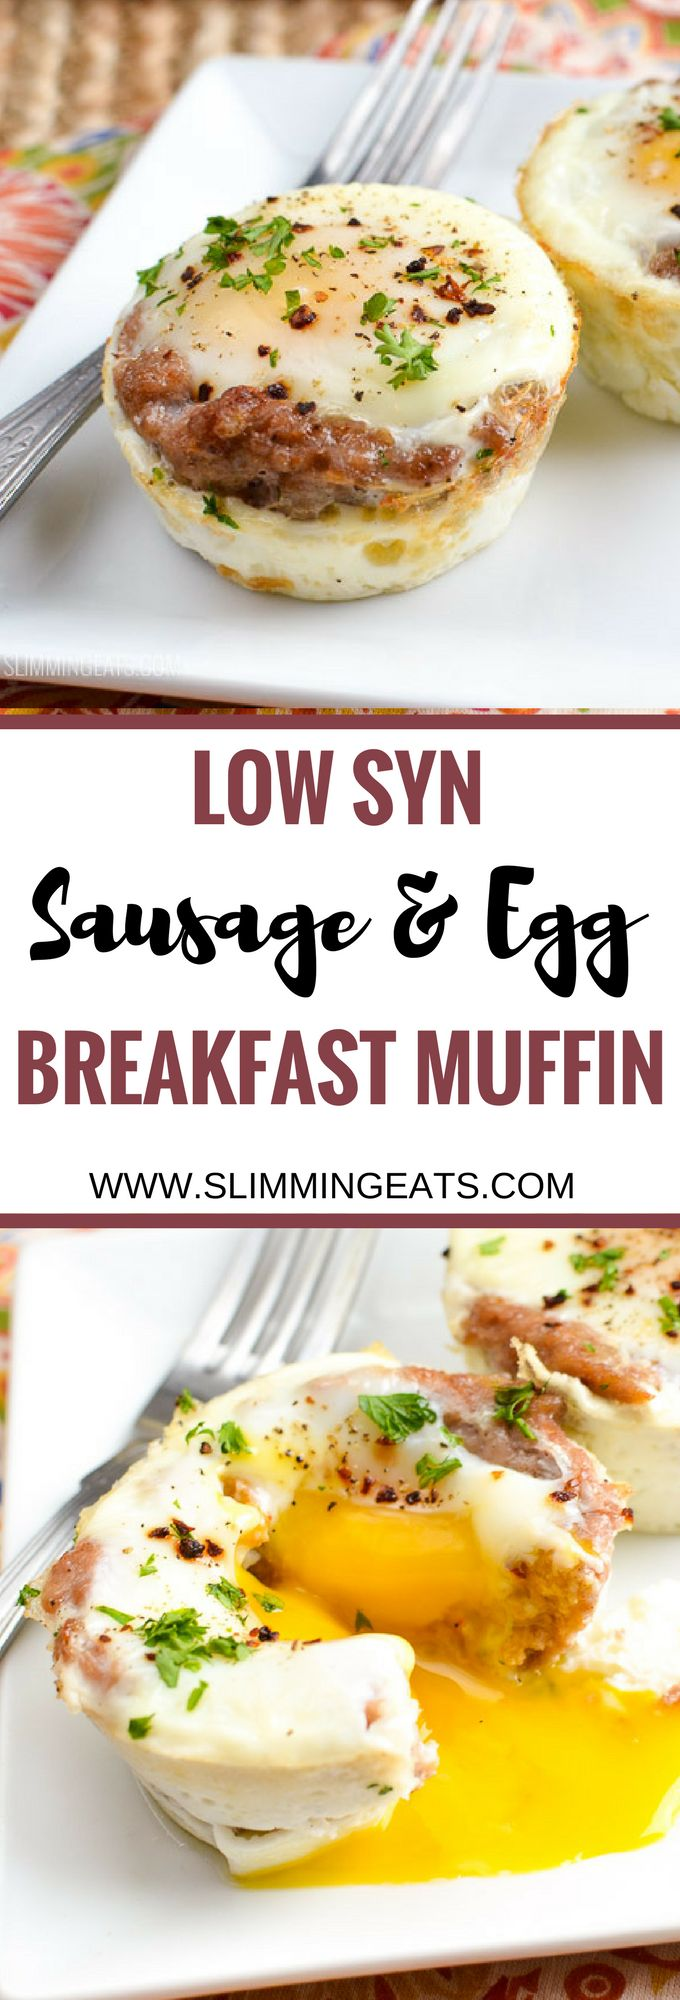 Slimming Eats - Low Syn Sausage and Egg Breakfast Muffins - gluten free, dairy free, paleo, Slimming World and Weight Watchers friendly paleo lunch egg